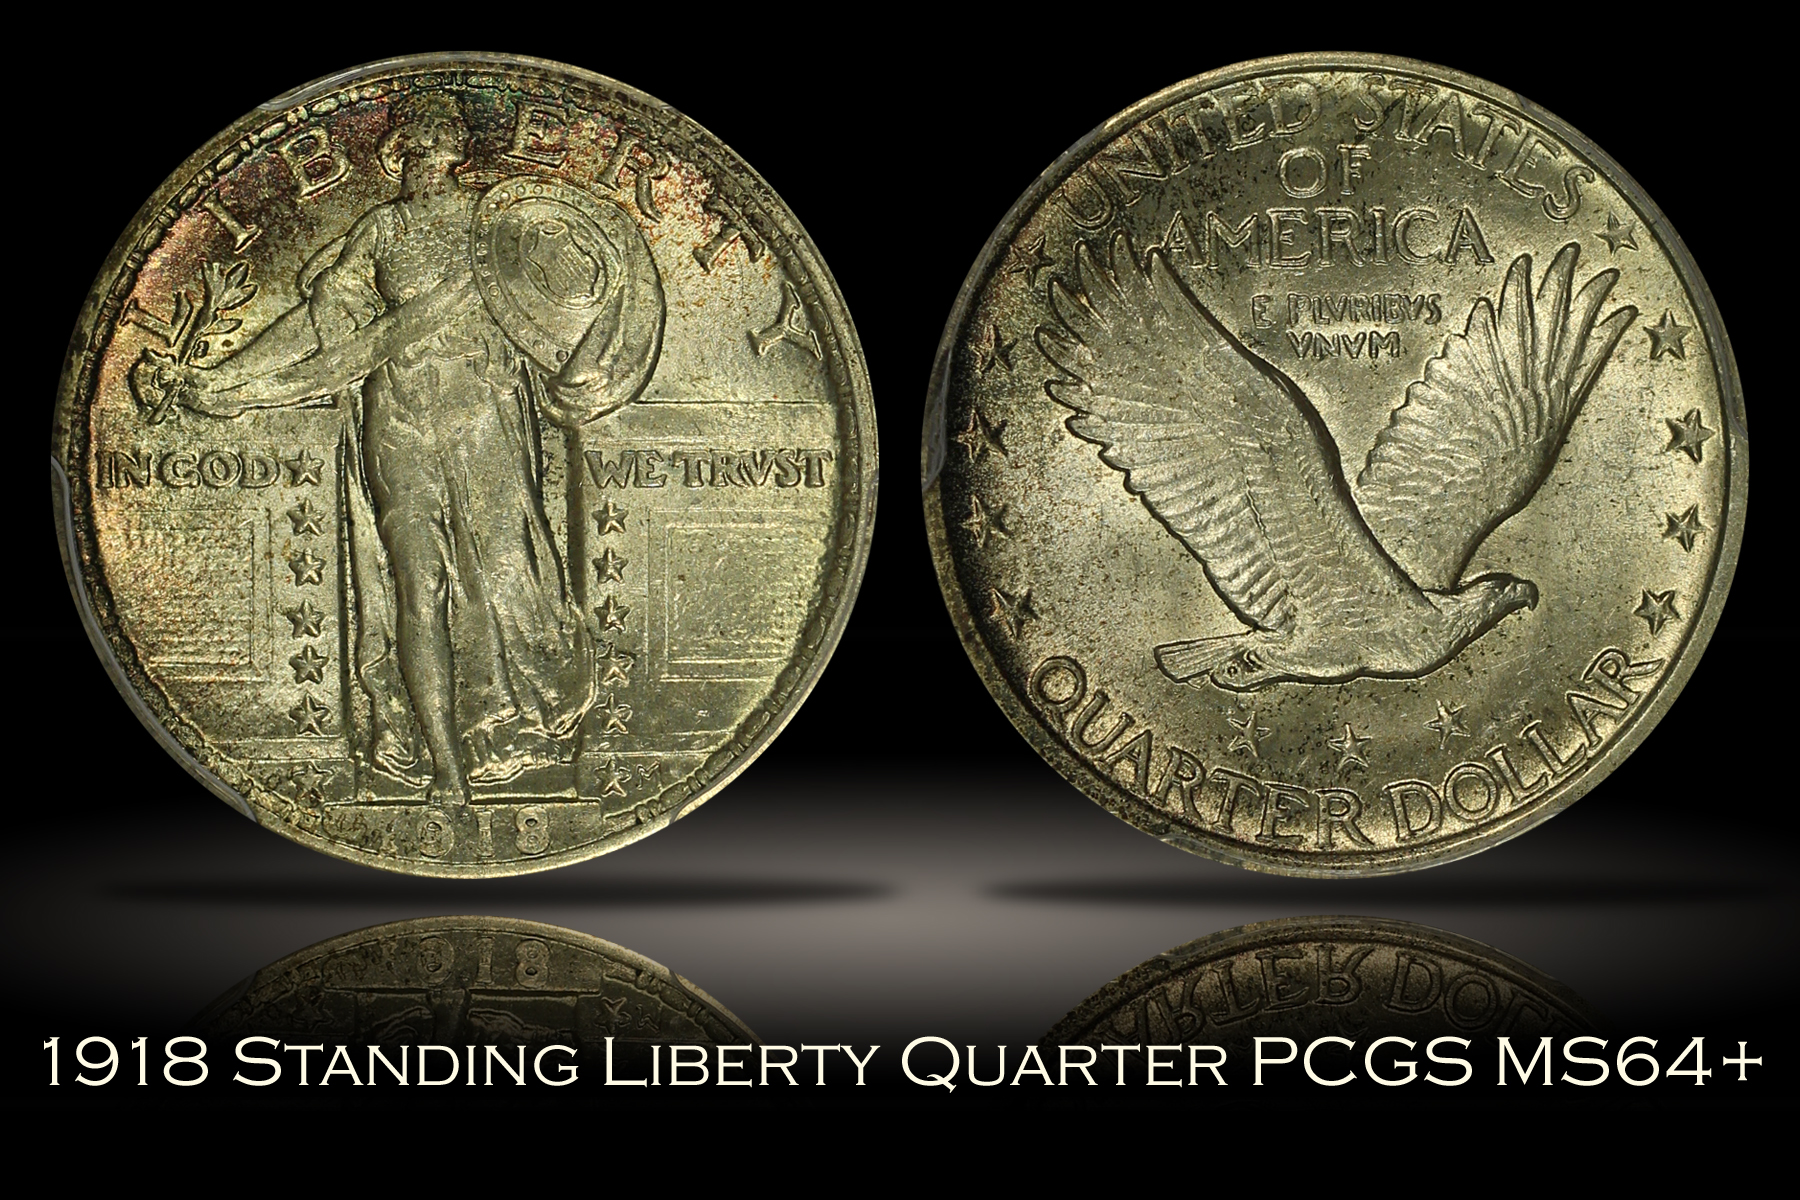 1918 Standing Liberty Quarter PCGS MS64+